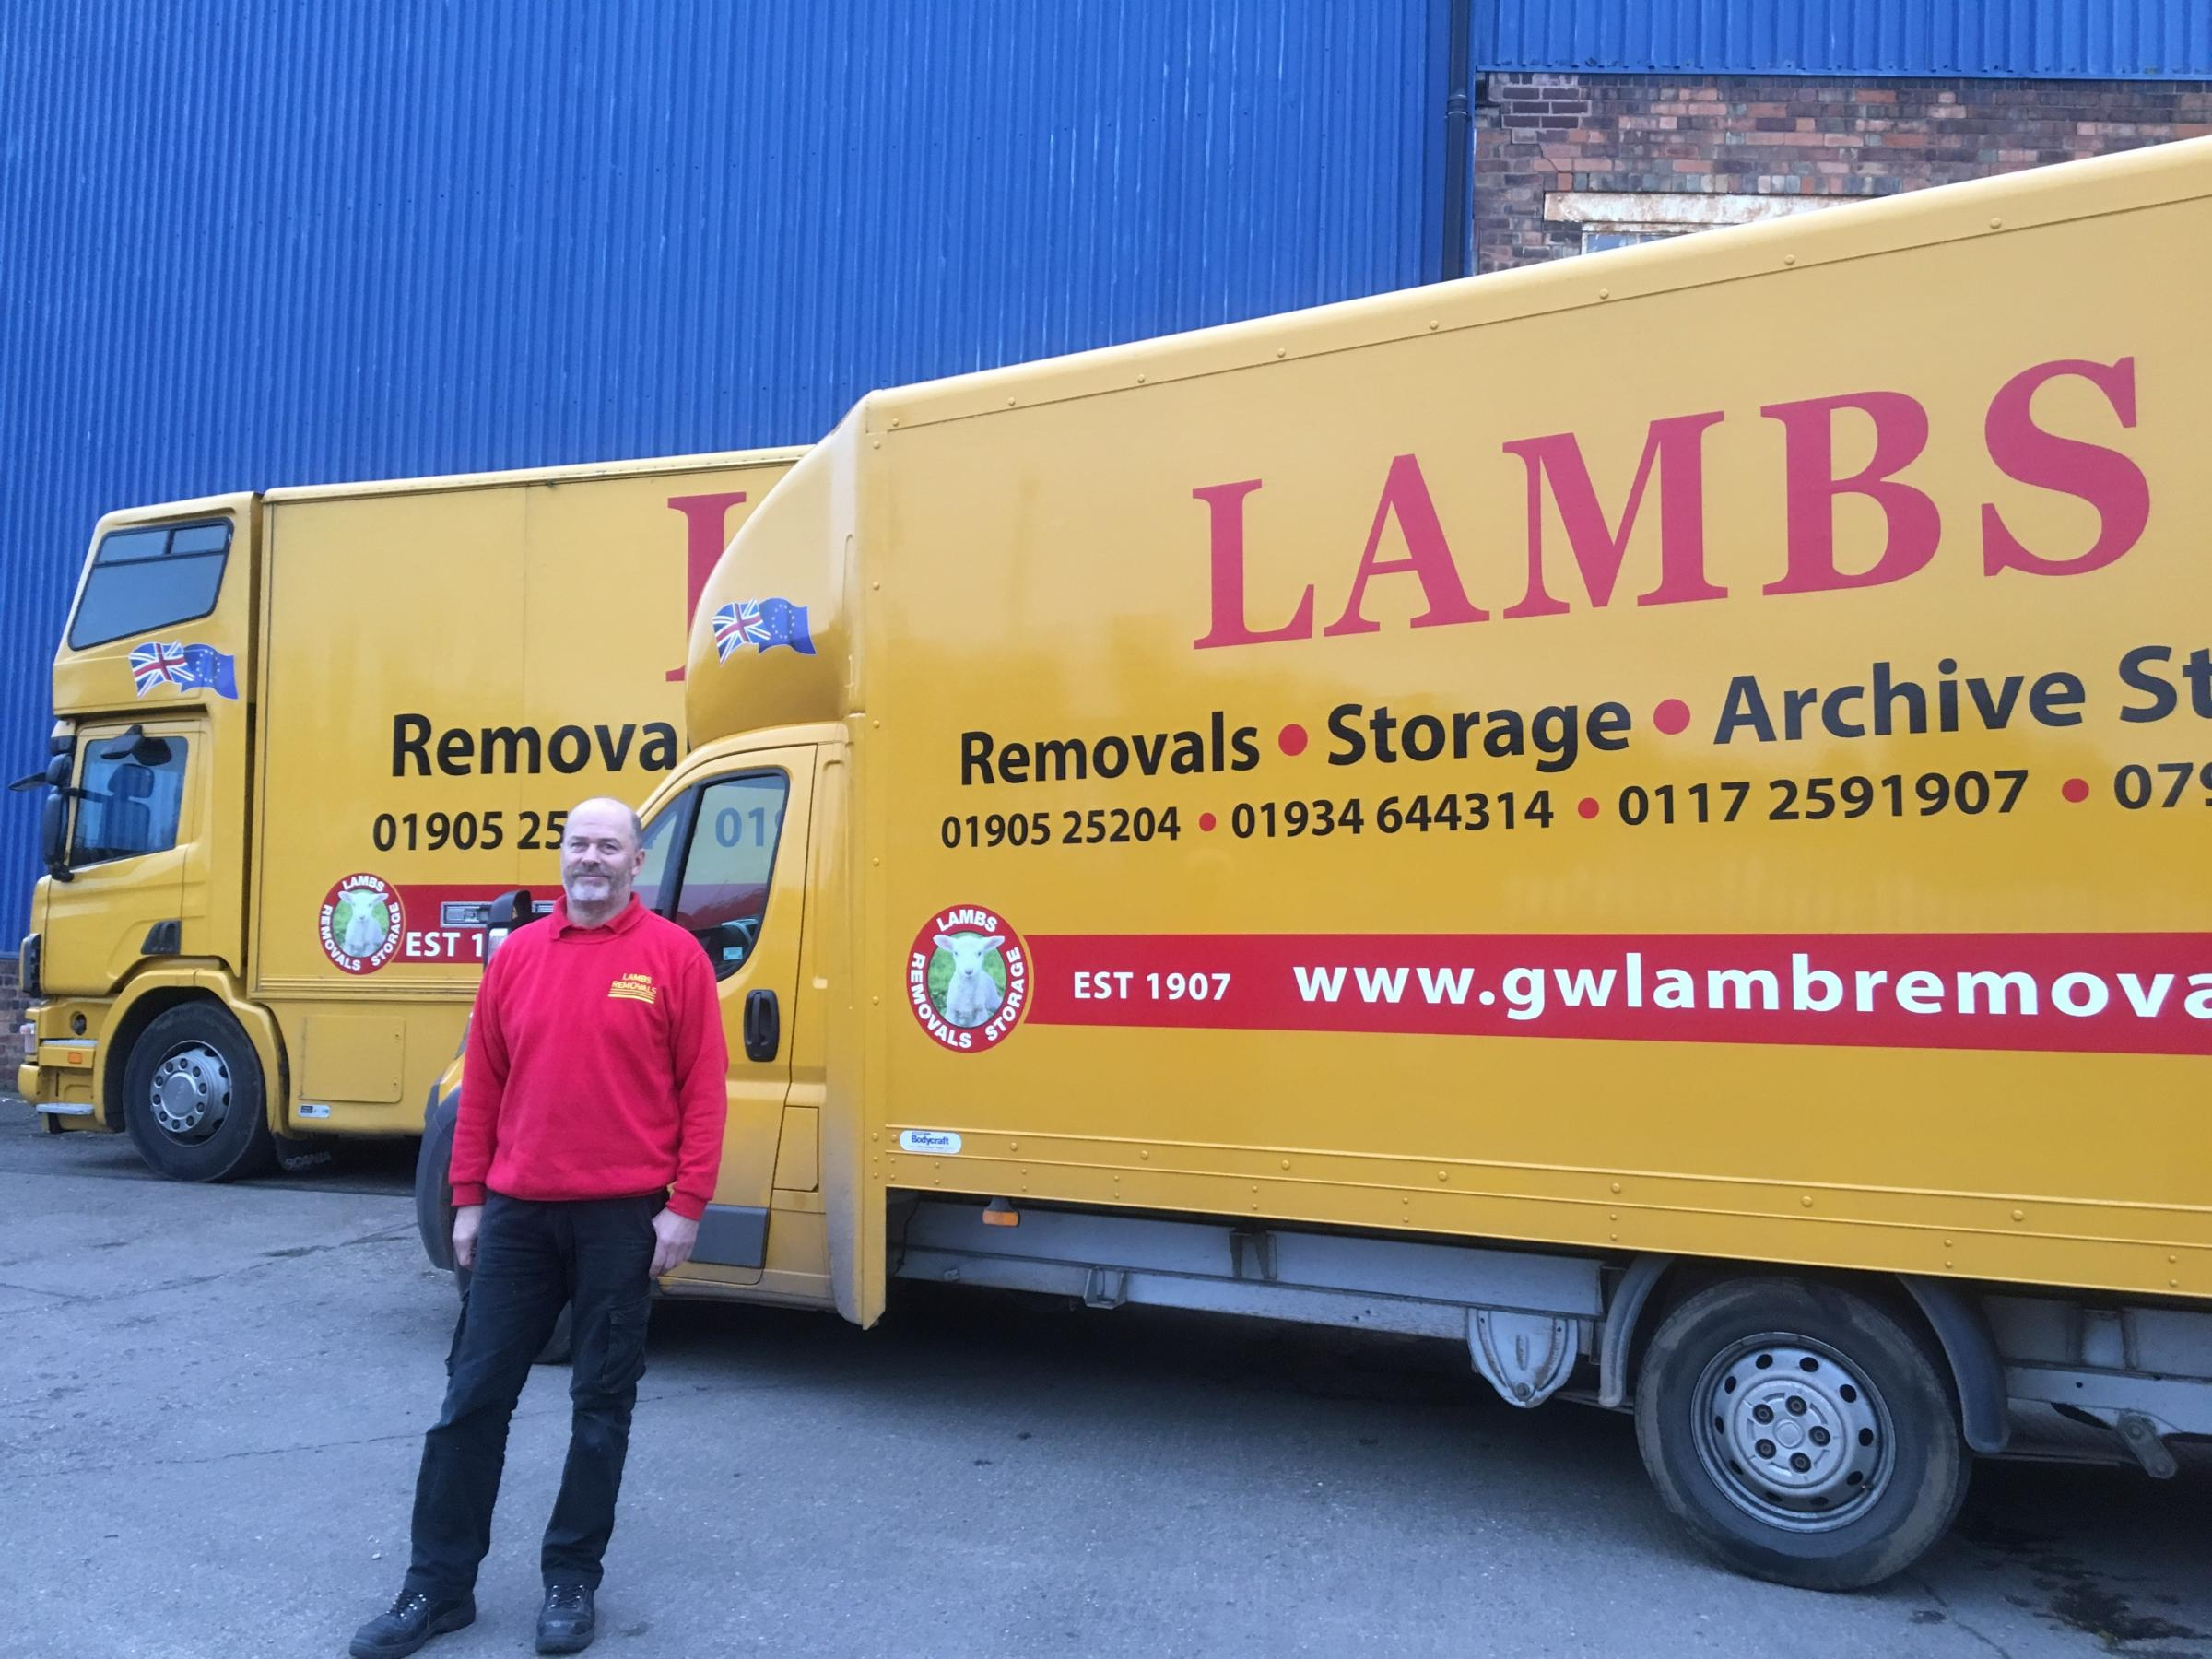 Behind the Business: GW Lamb Removals director Peter Dullehan